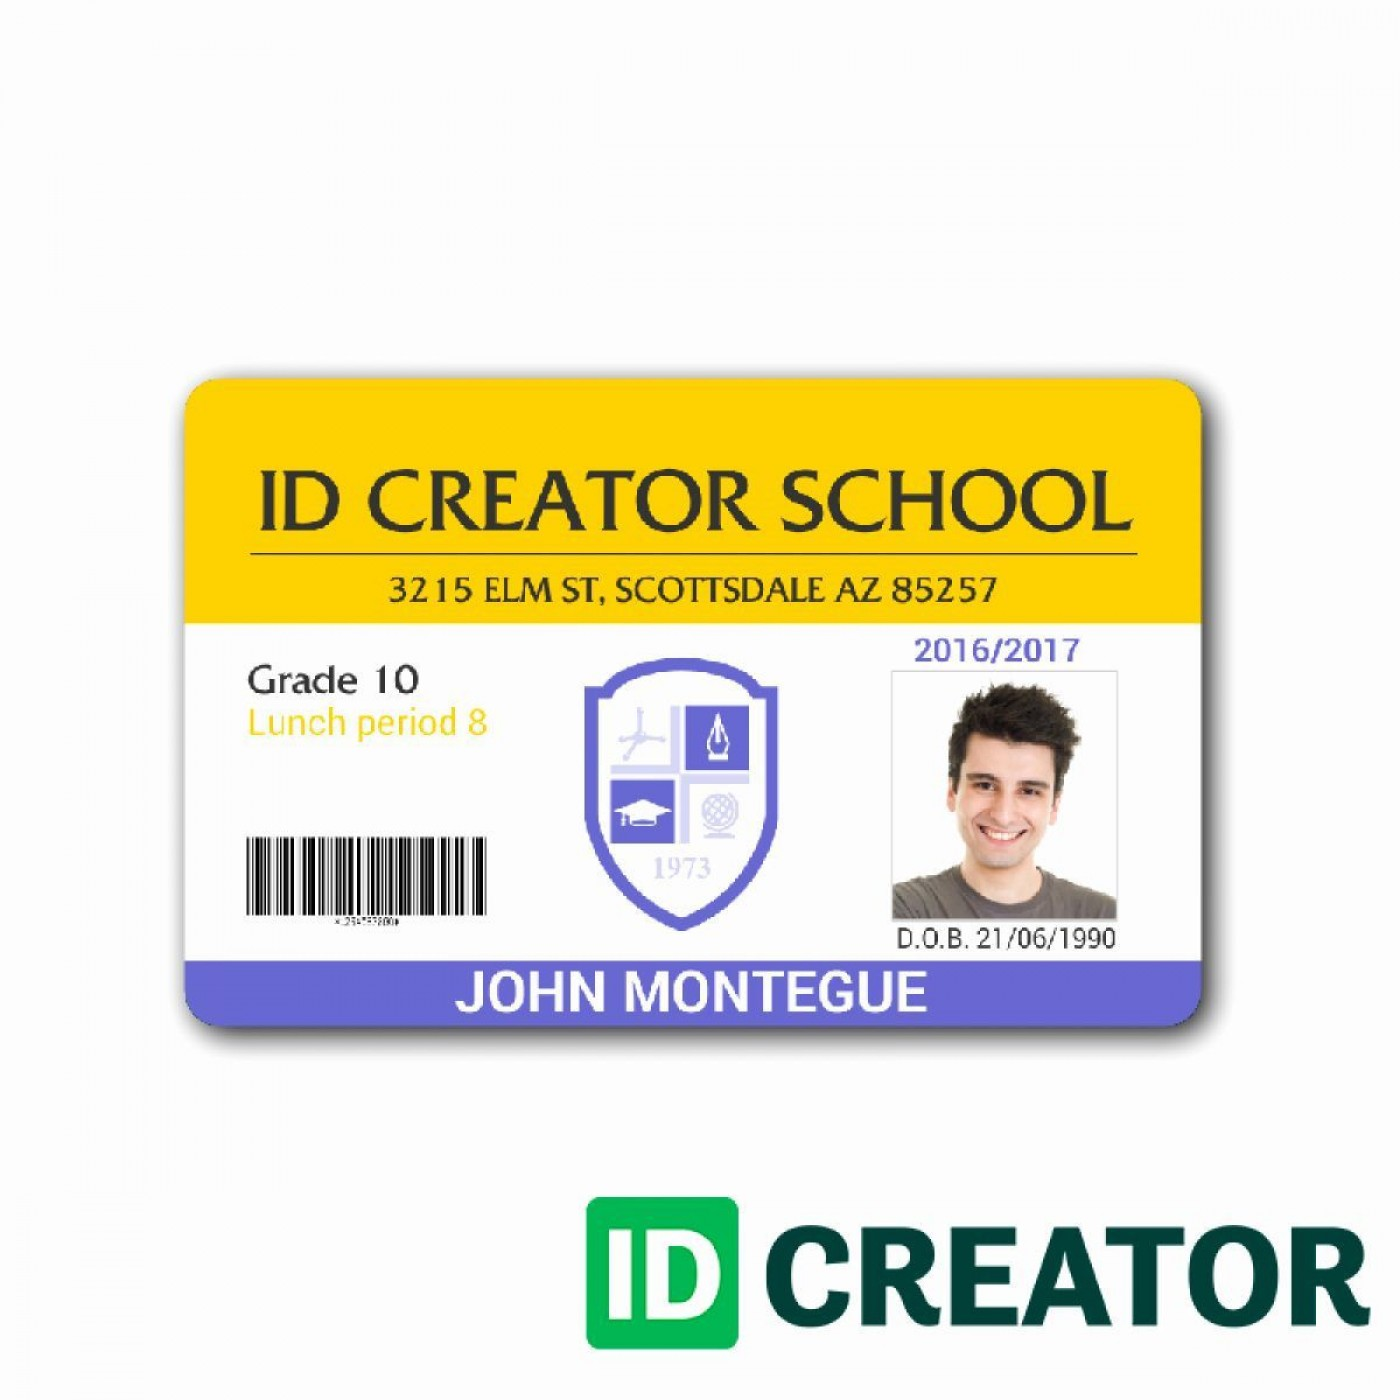 009 Sensational Student Id Card Template Concept  Free Psd Download Word School1400